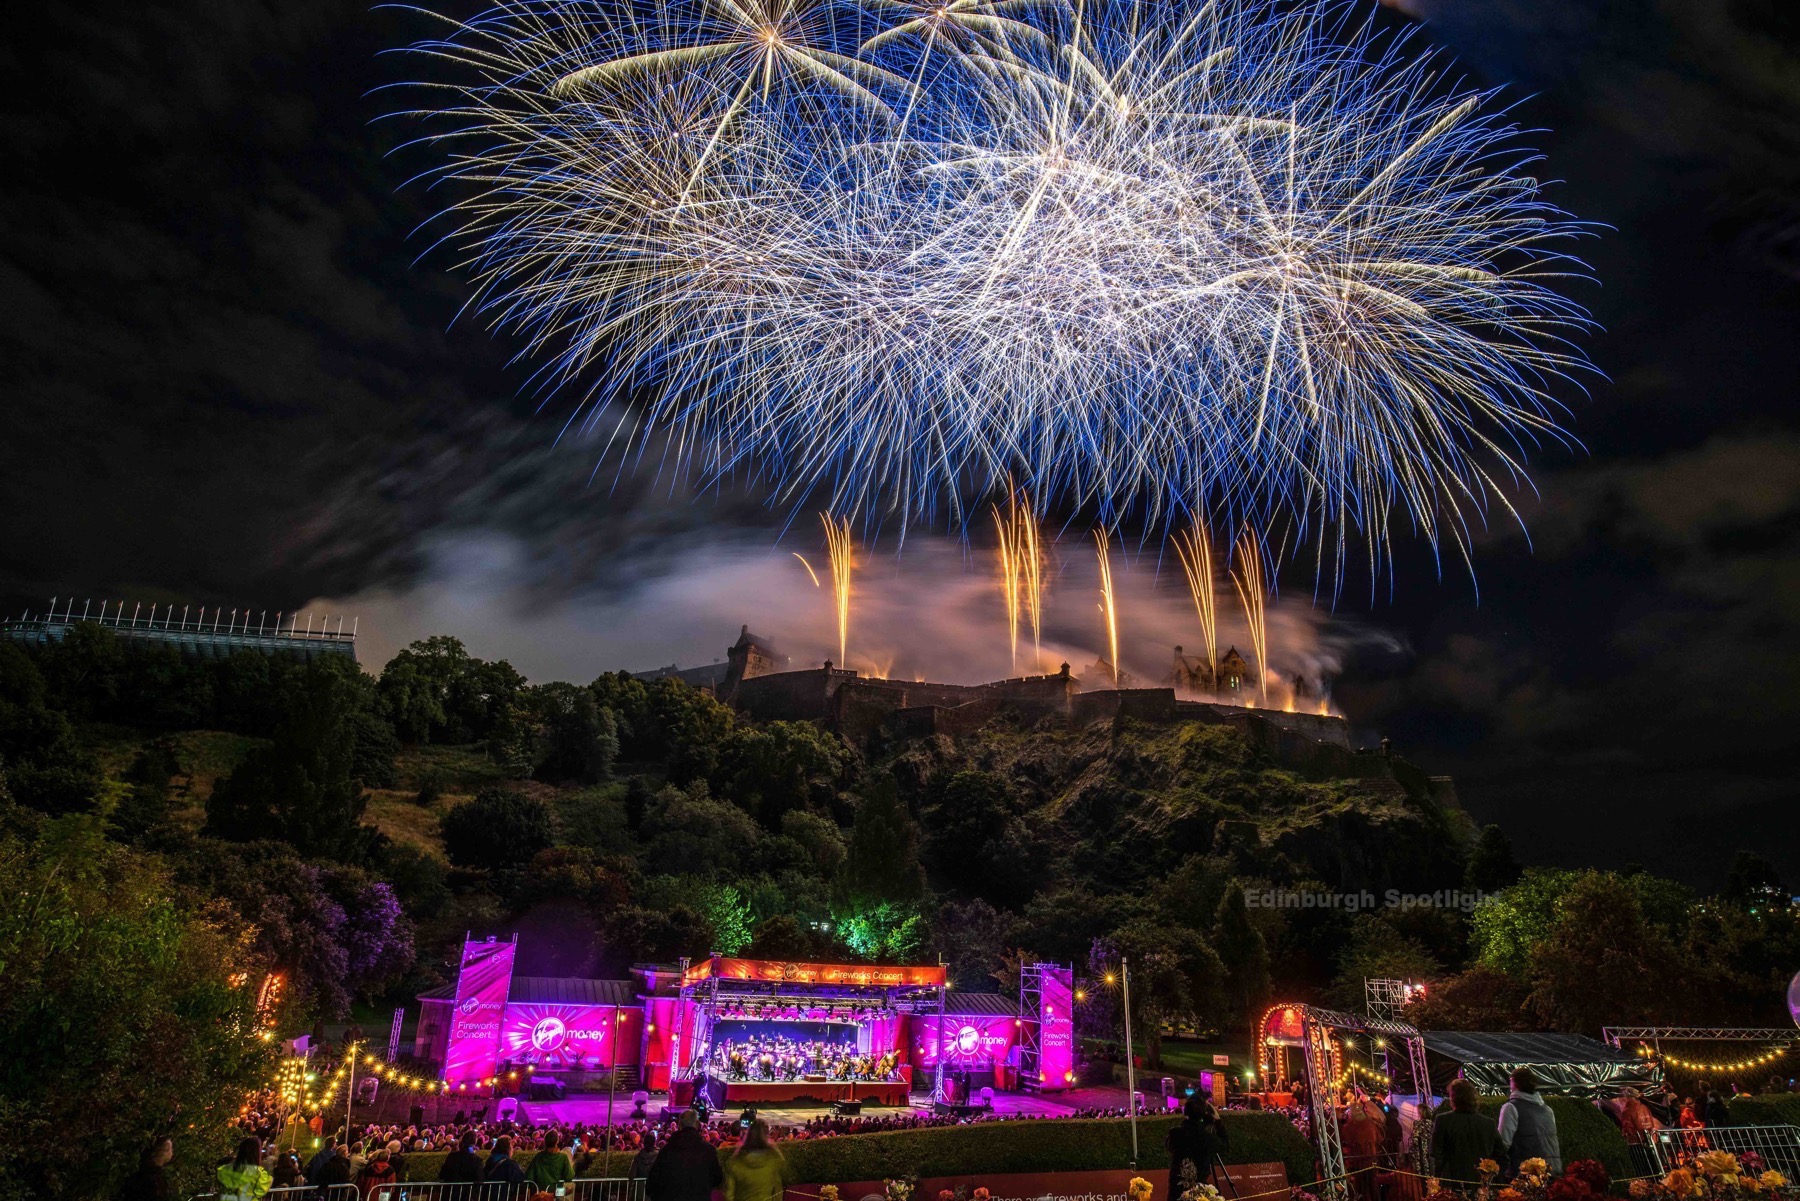 Image result for edinburgh festival fireworks